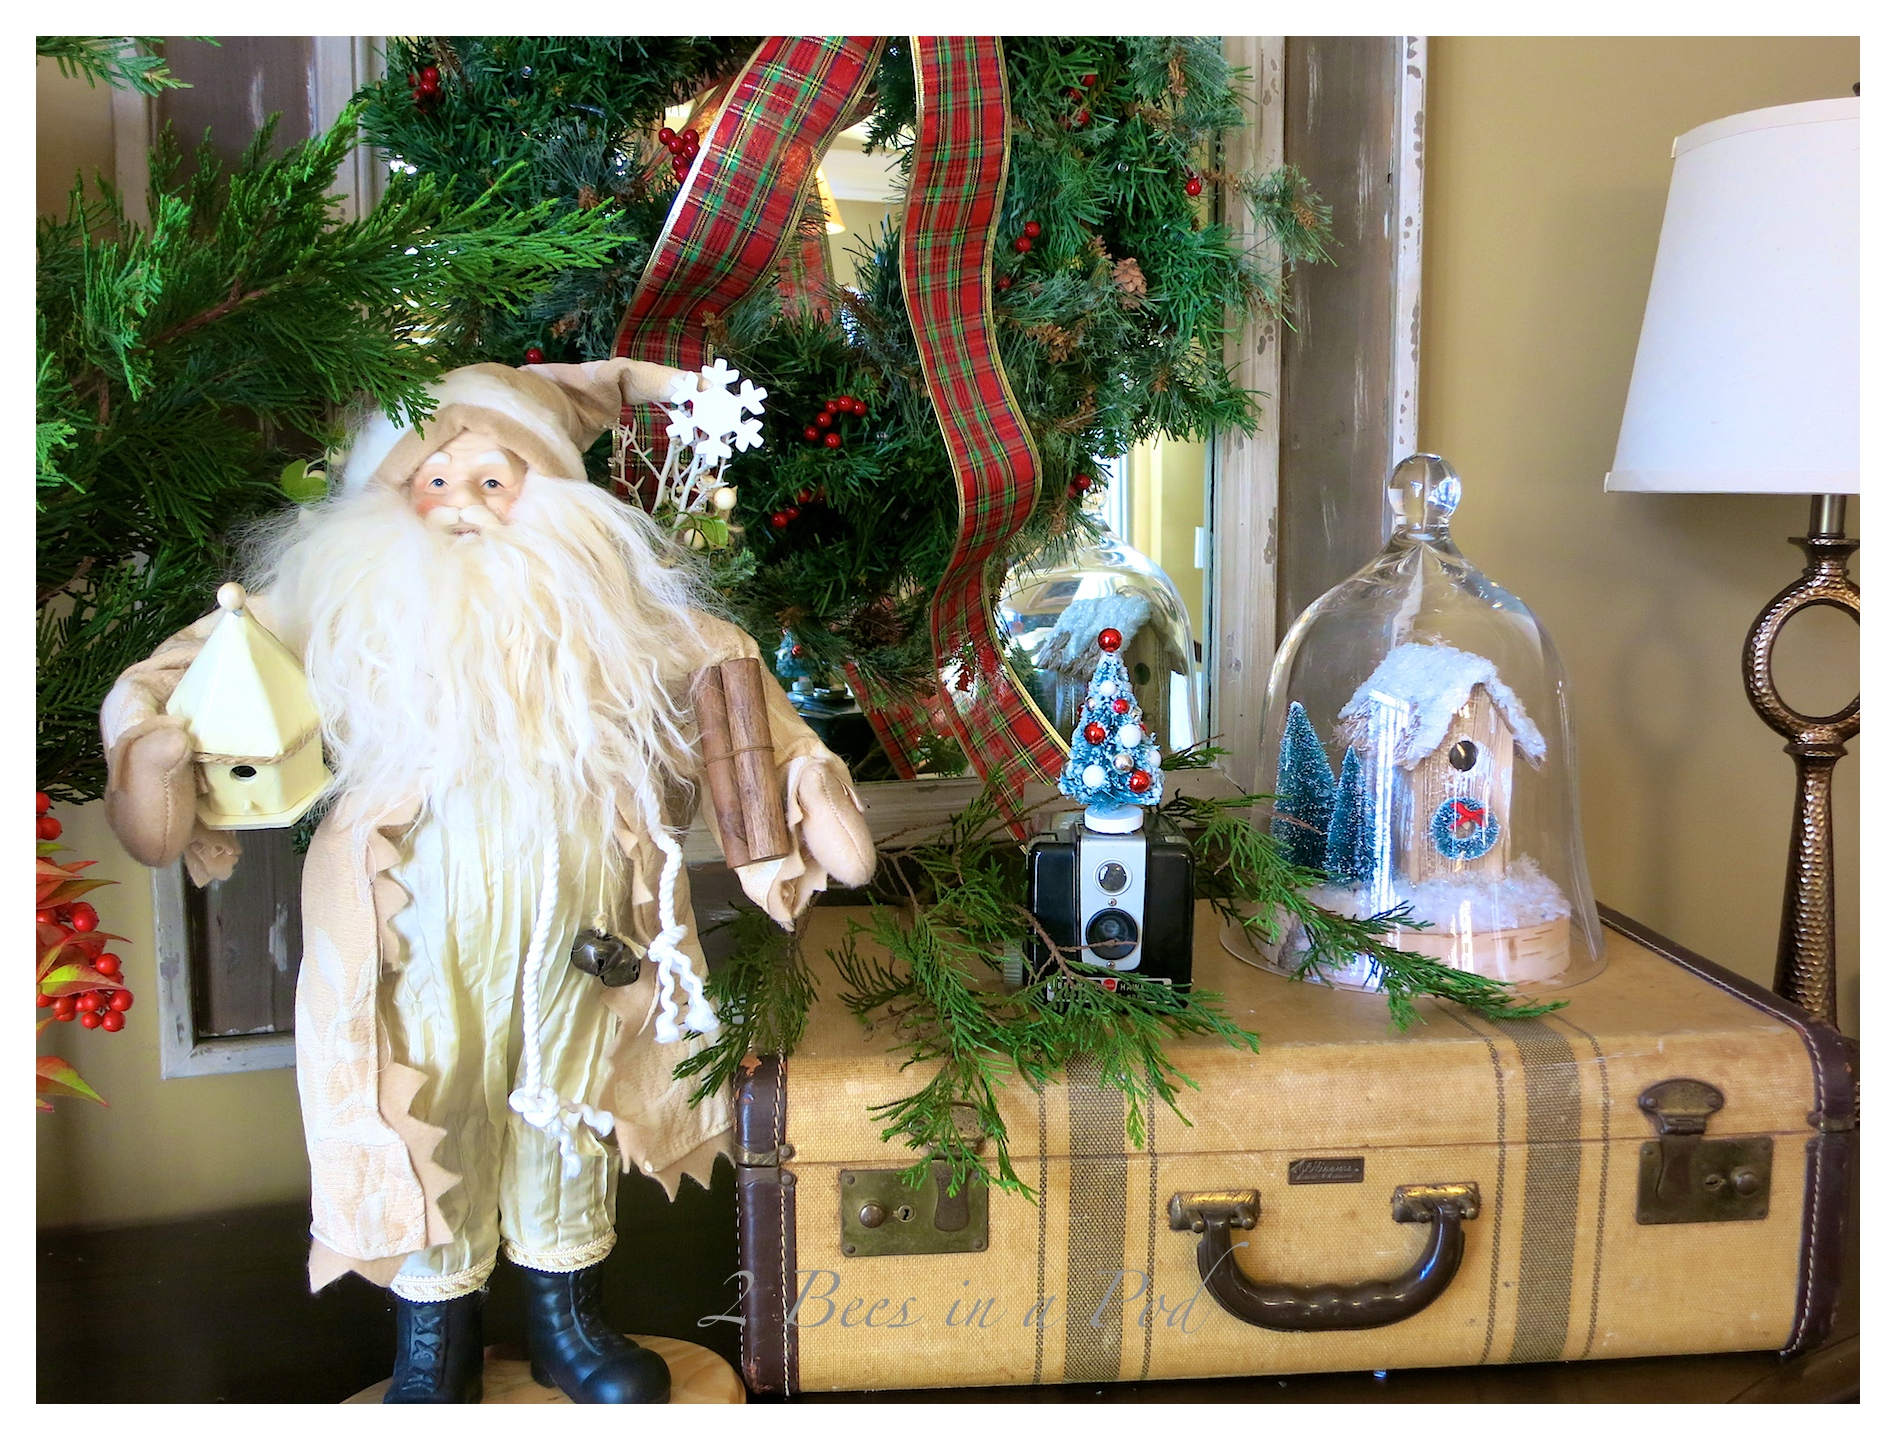 IMG_1004Christmas Home Tour 2014 - traditional green and red decor. Also rustic and vintage decor. Lots of Santas, vintage Buddy L truck and tractor